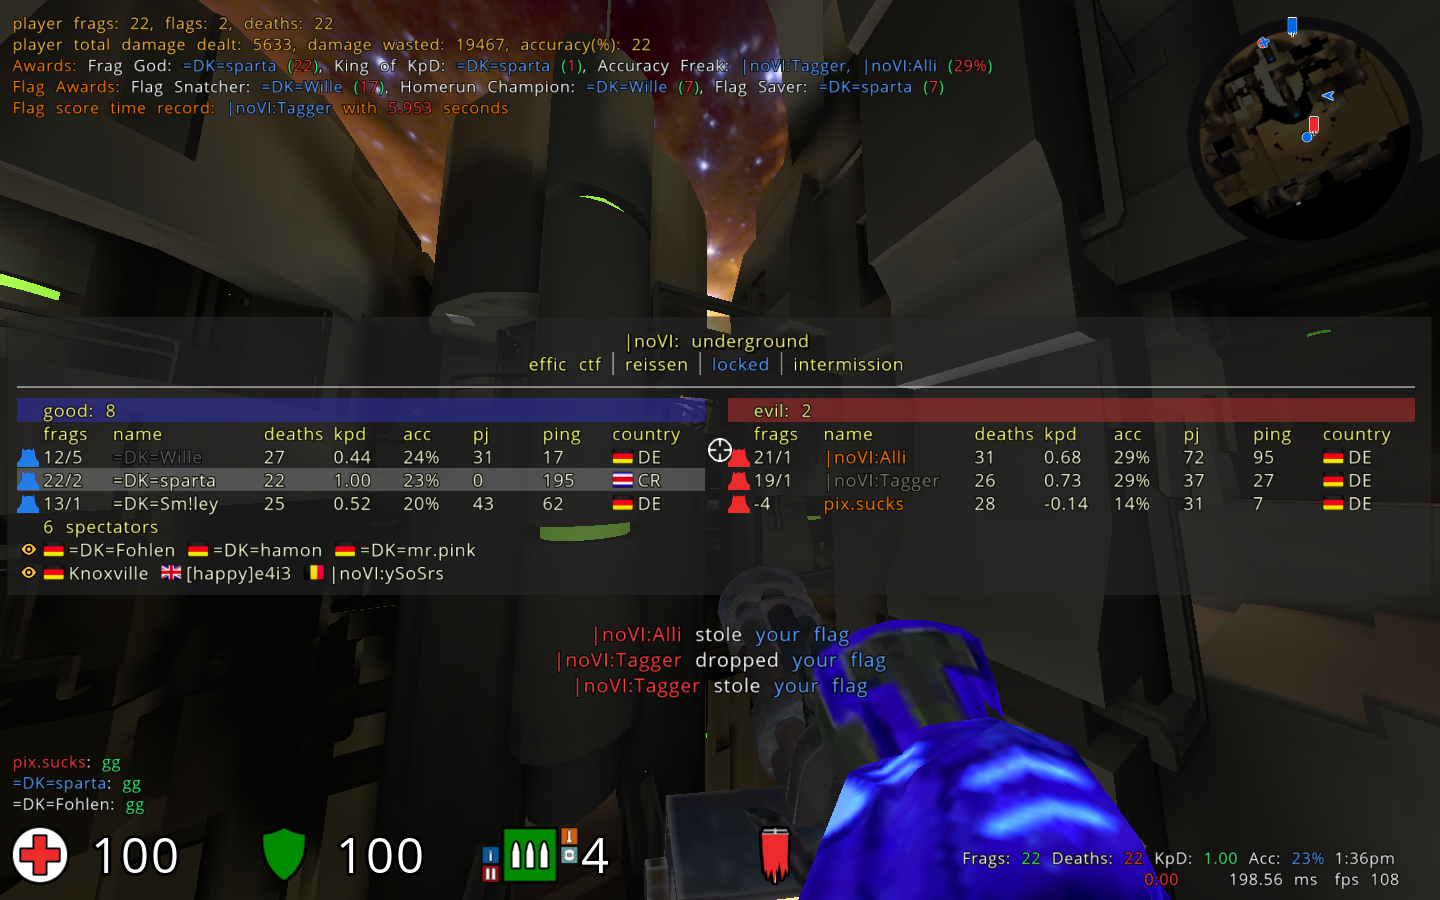 https://darkkeepers.dk/images/squadmanagement/warscreenshots/thumbs/17.11.2014_NoVi_vs_DK_efficctf_reissen.png